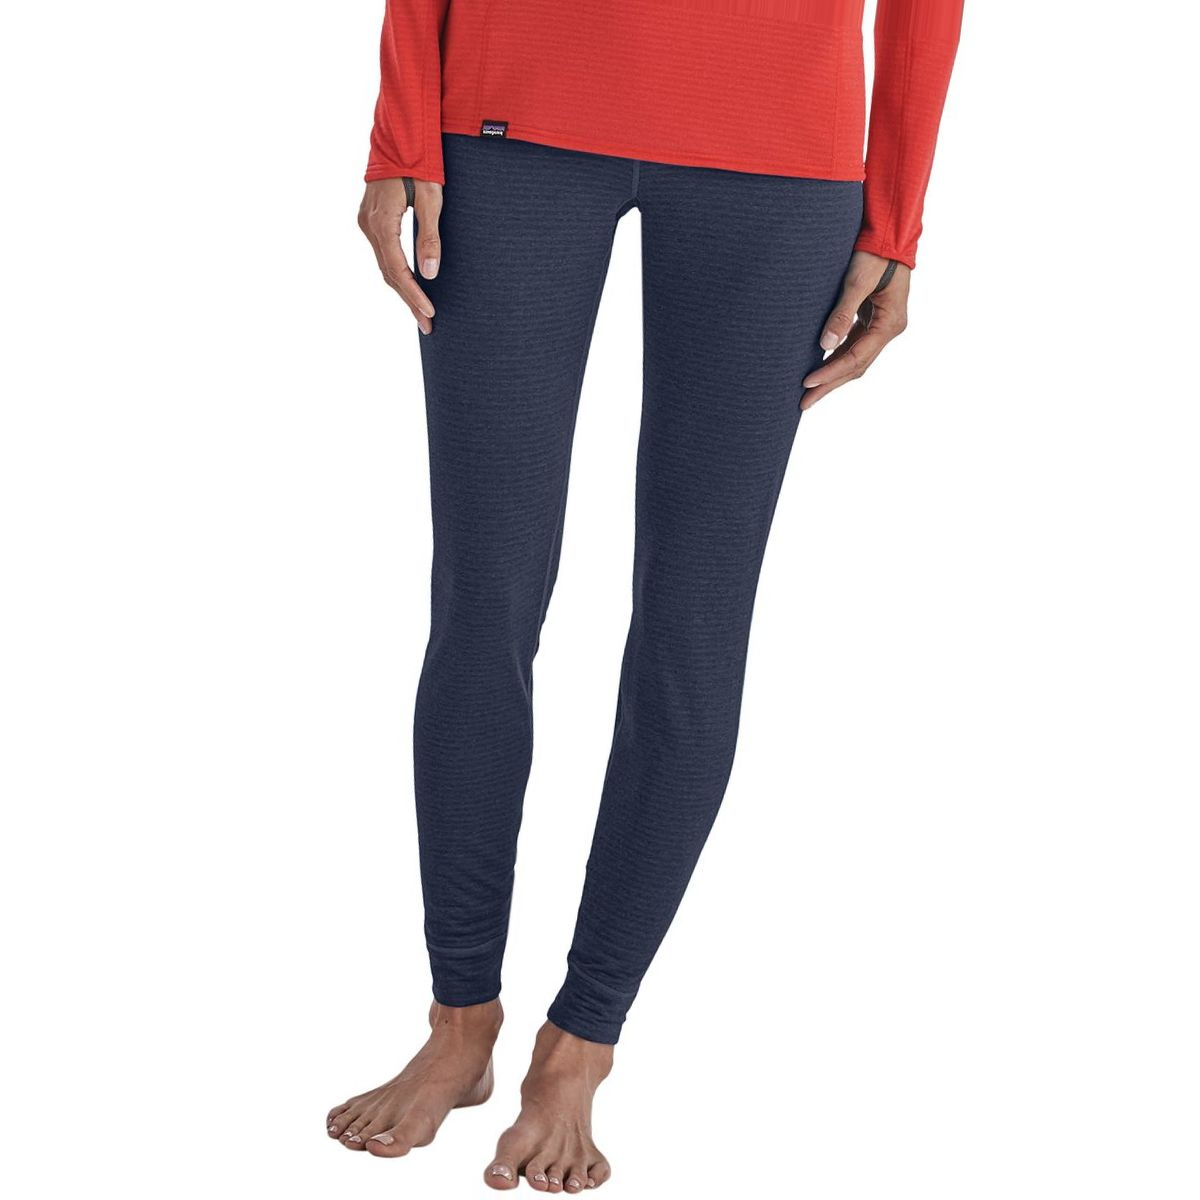 Patagonia Capilene Thermal Weight Bottom - Women's